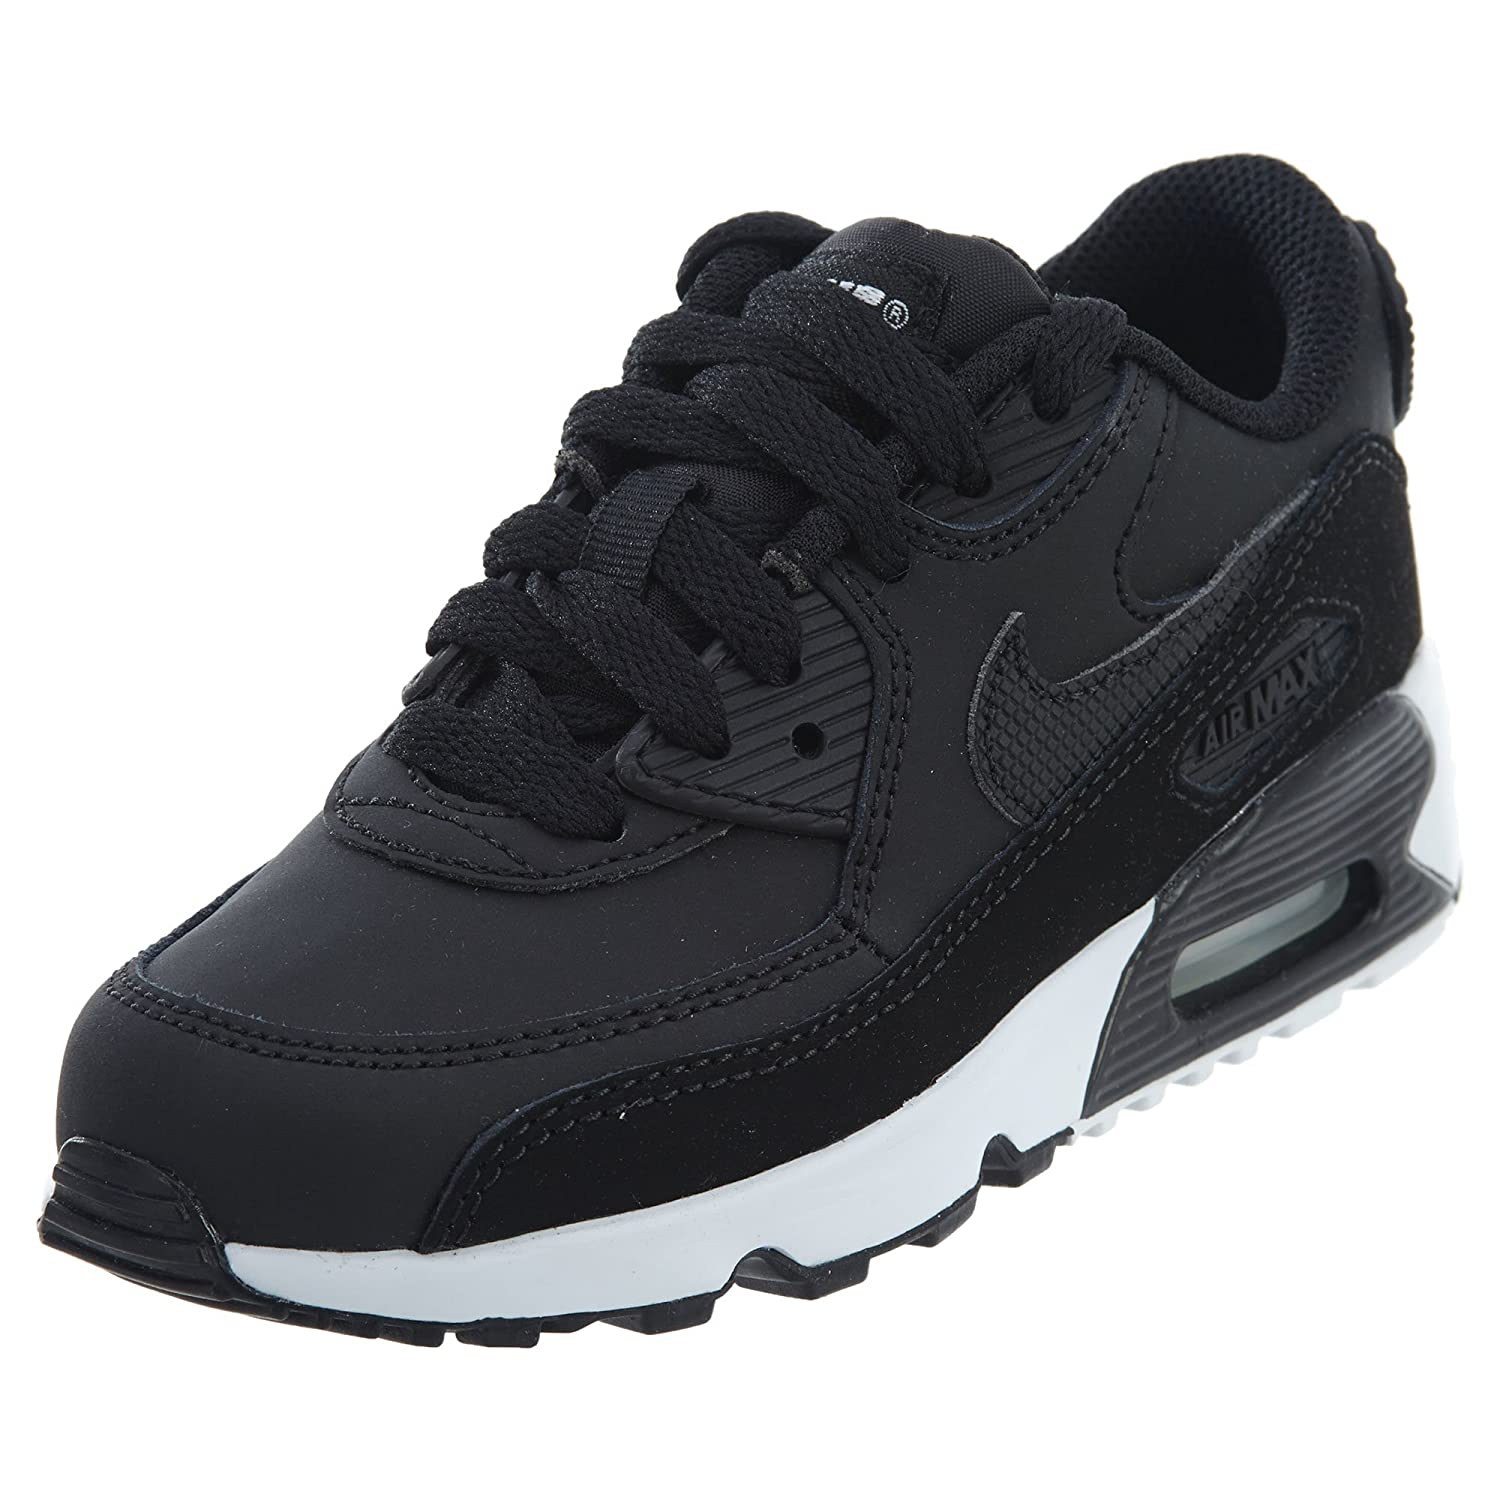 brand new 9abac 2437b Amazon.com   Nike Air Max 90 LTR (PS) boys running-shoes 833414   Sneakers